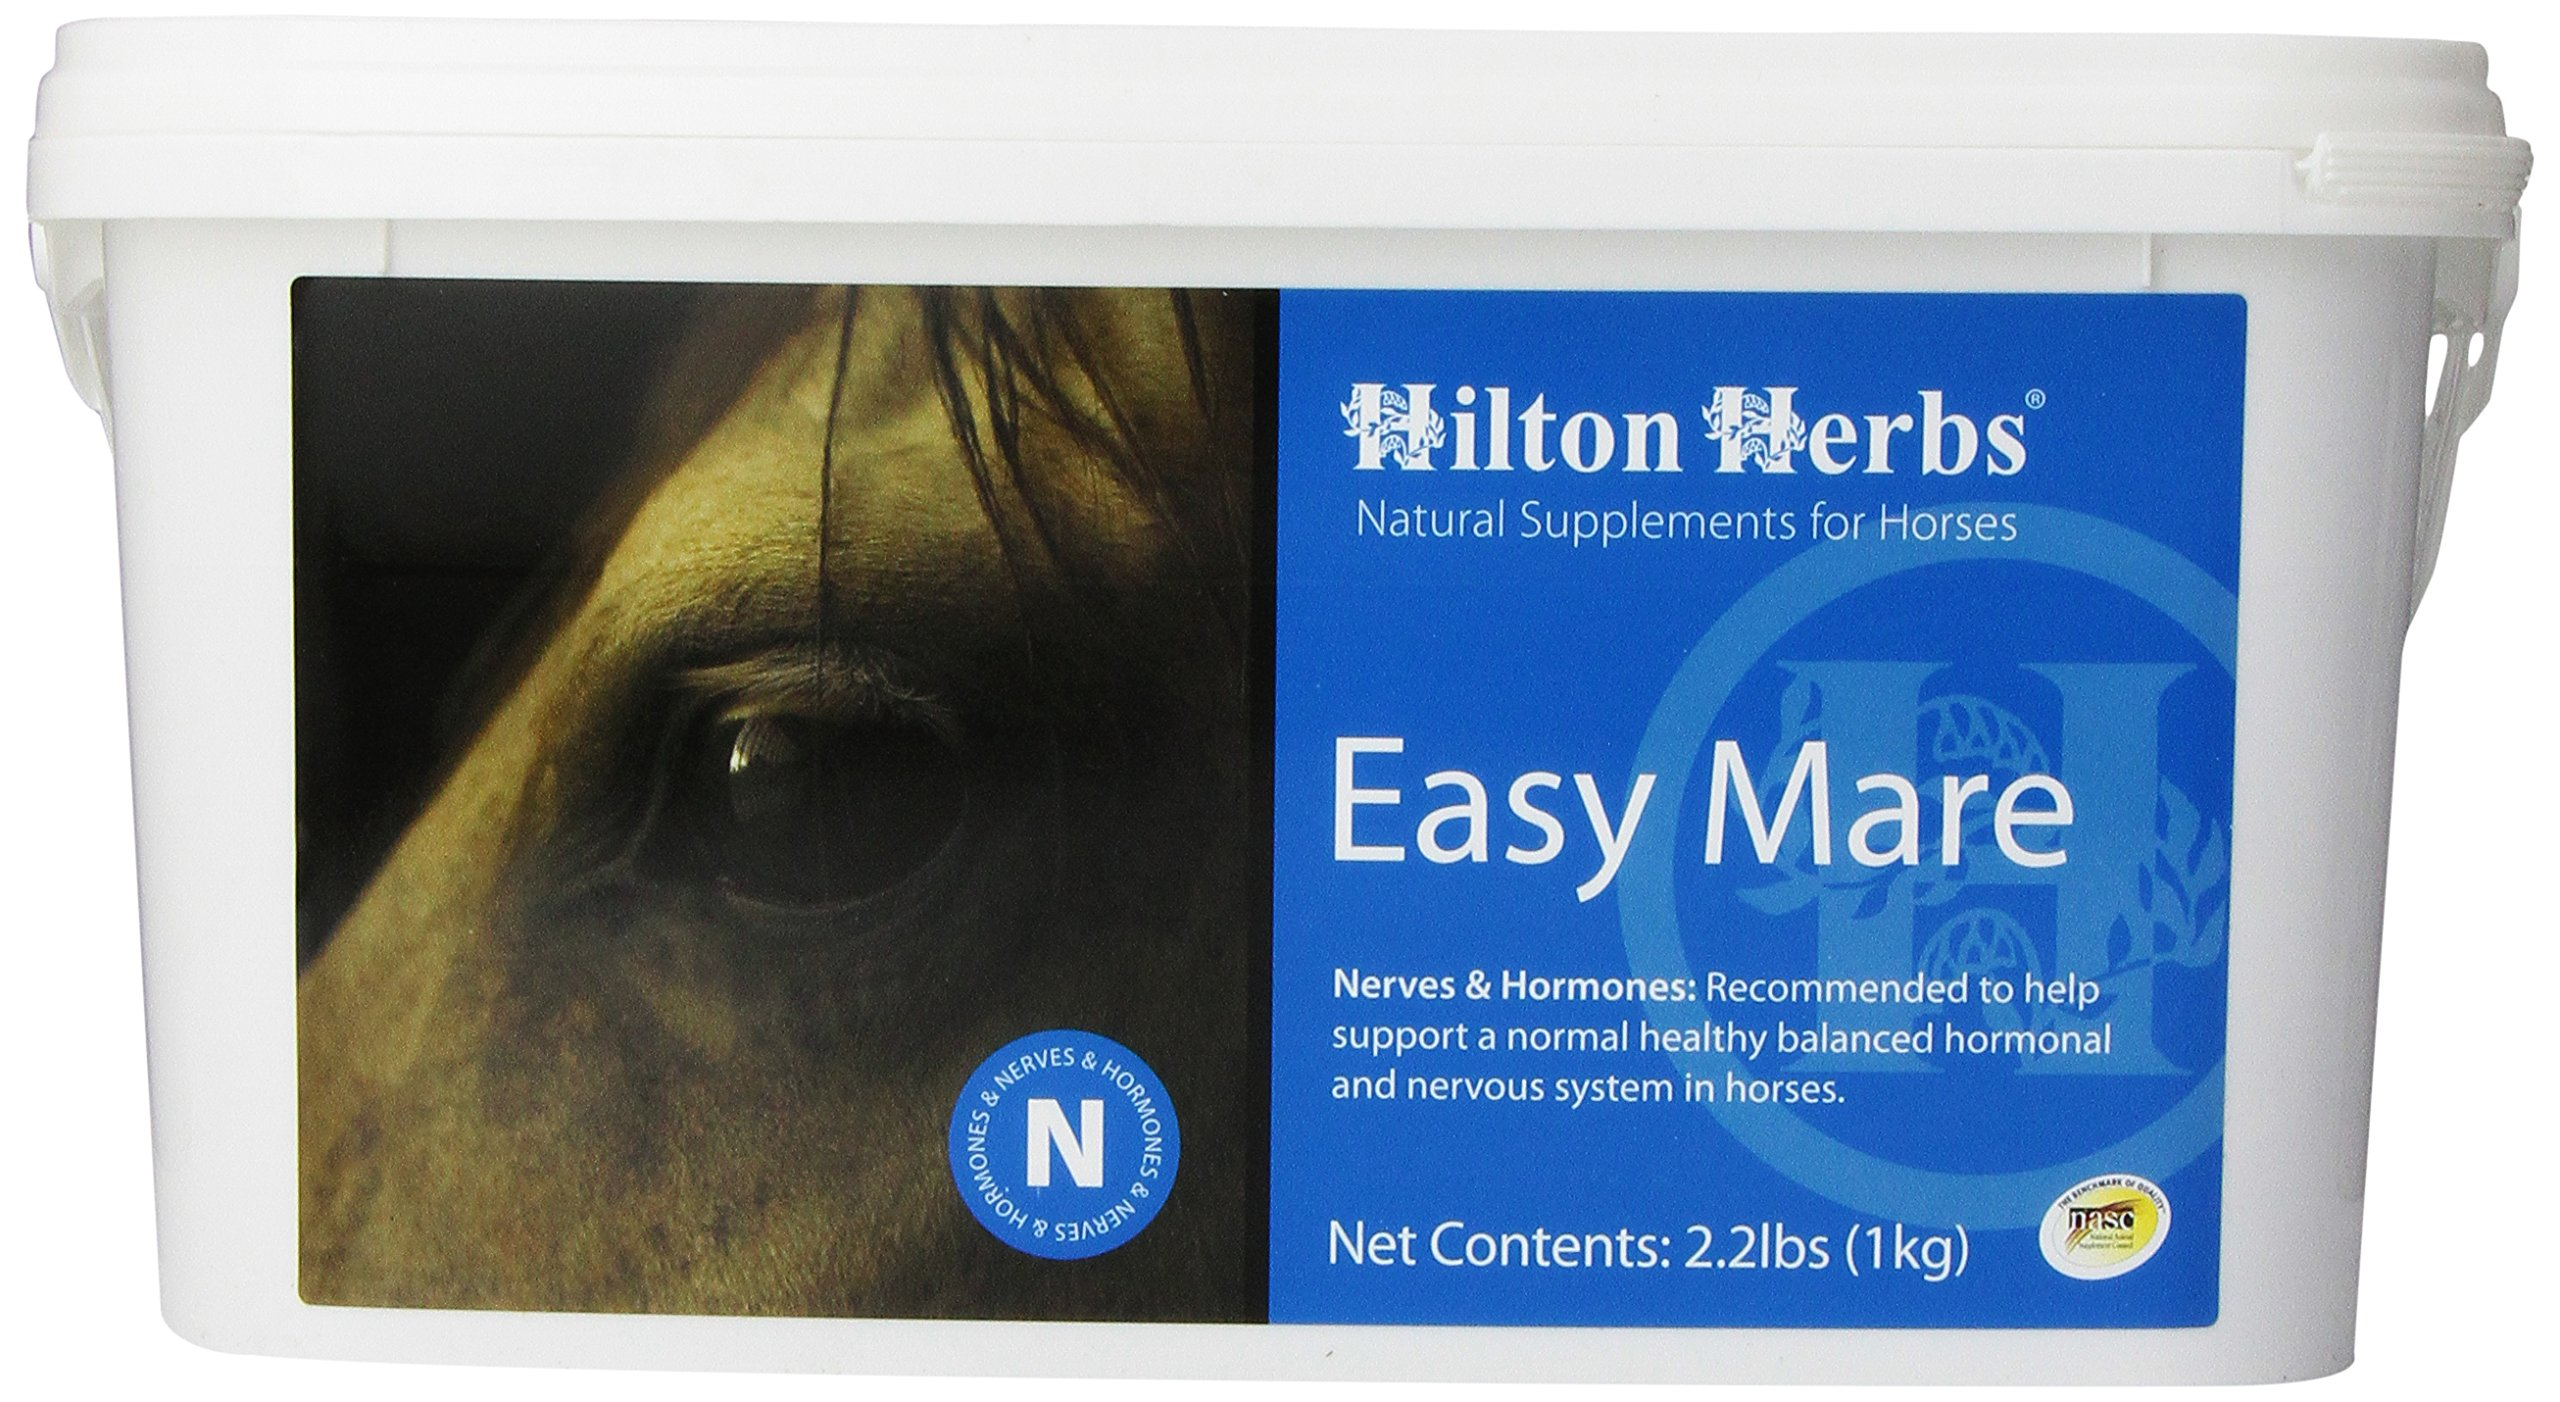 Hilton Herbs Easy Mare Herbal Hormone Balancing Supplement for Horses, 1kg Tub by Hilton Herbs